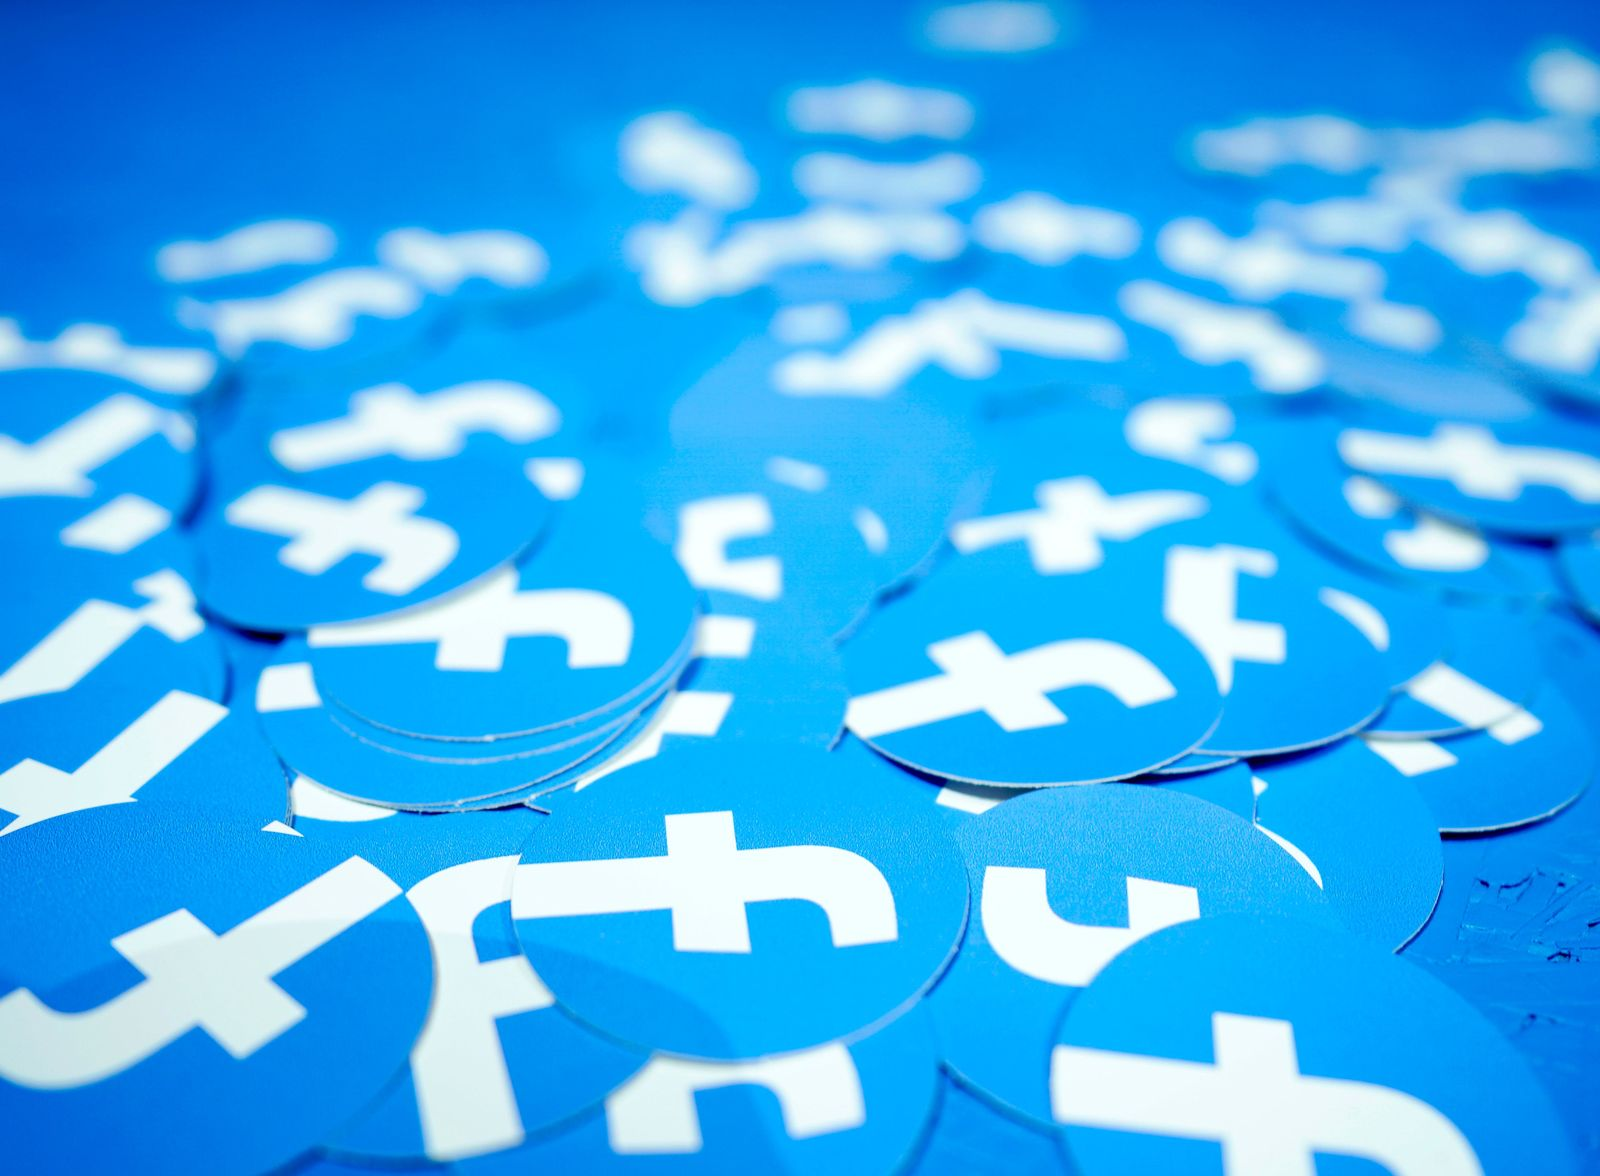 FILE - In this April 30, 2019, file photo, Facebook stickers are laid out on a table at F8, Facebook's developer conference in San Jose, Calif.{ } (AP Photo/Tony Avelar, File)